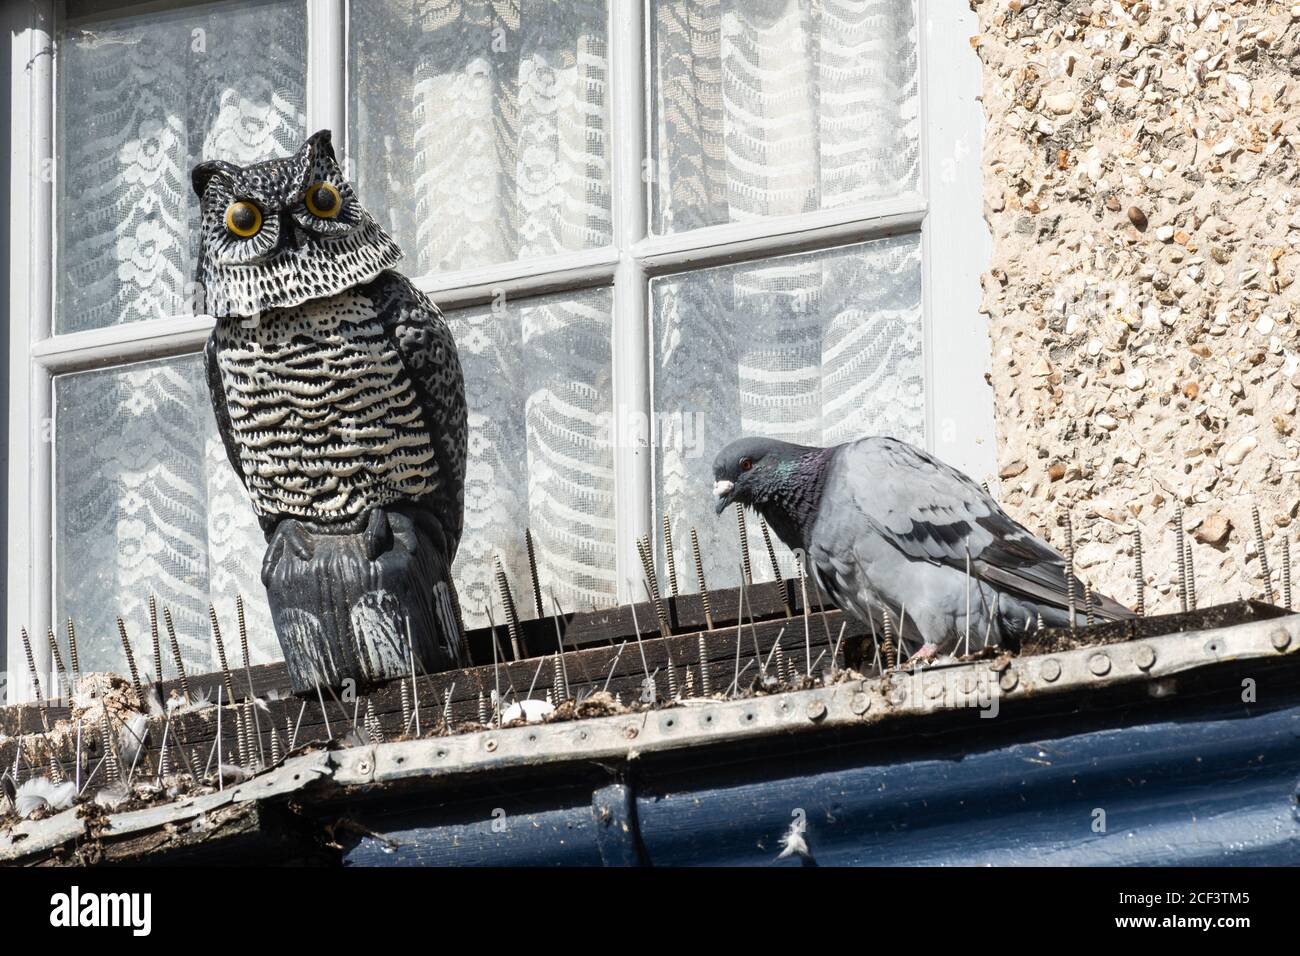 pigeon-next-to-a-decoy-bird-of-prey-owl-deterrent-on-a-window-ledge-with-spikes-2CF3TM5.jpg